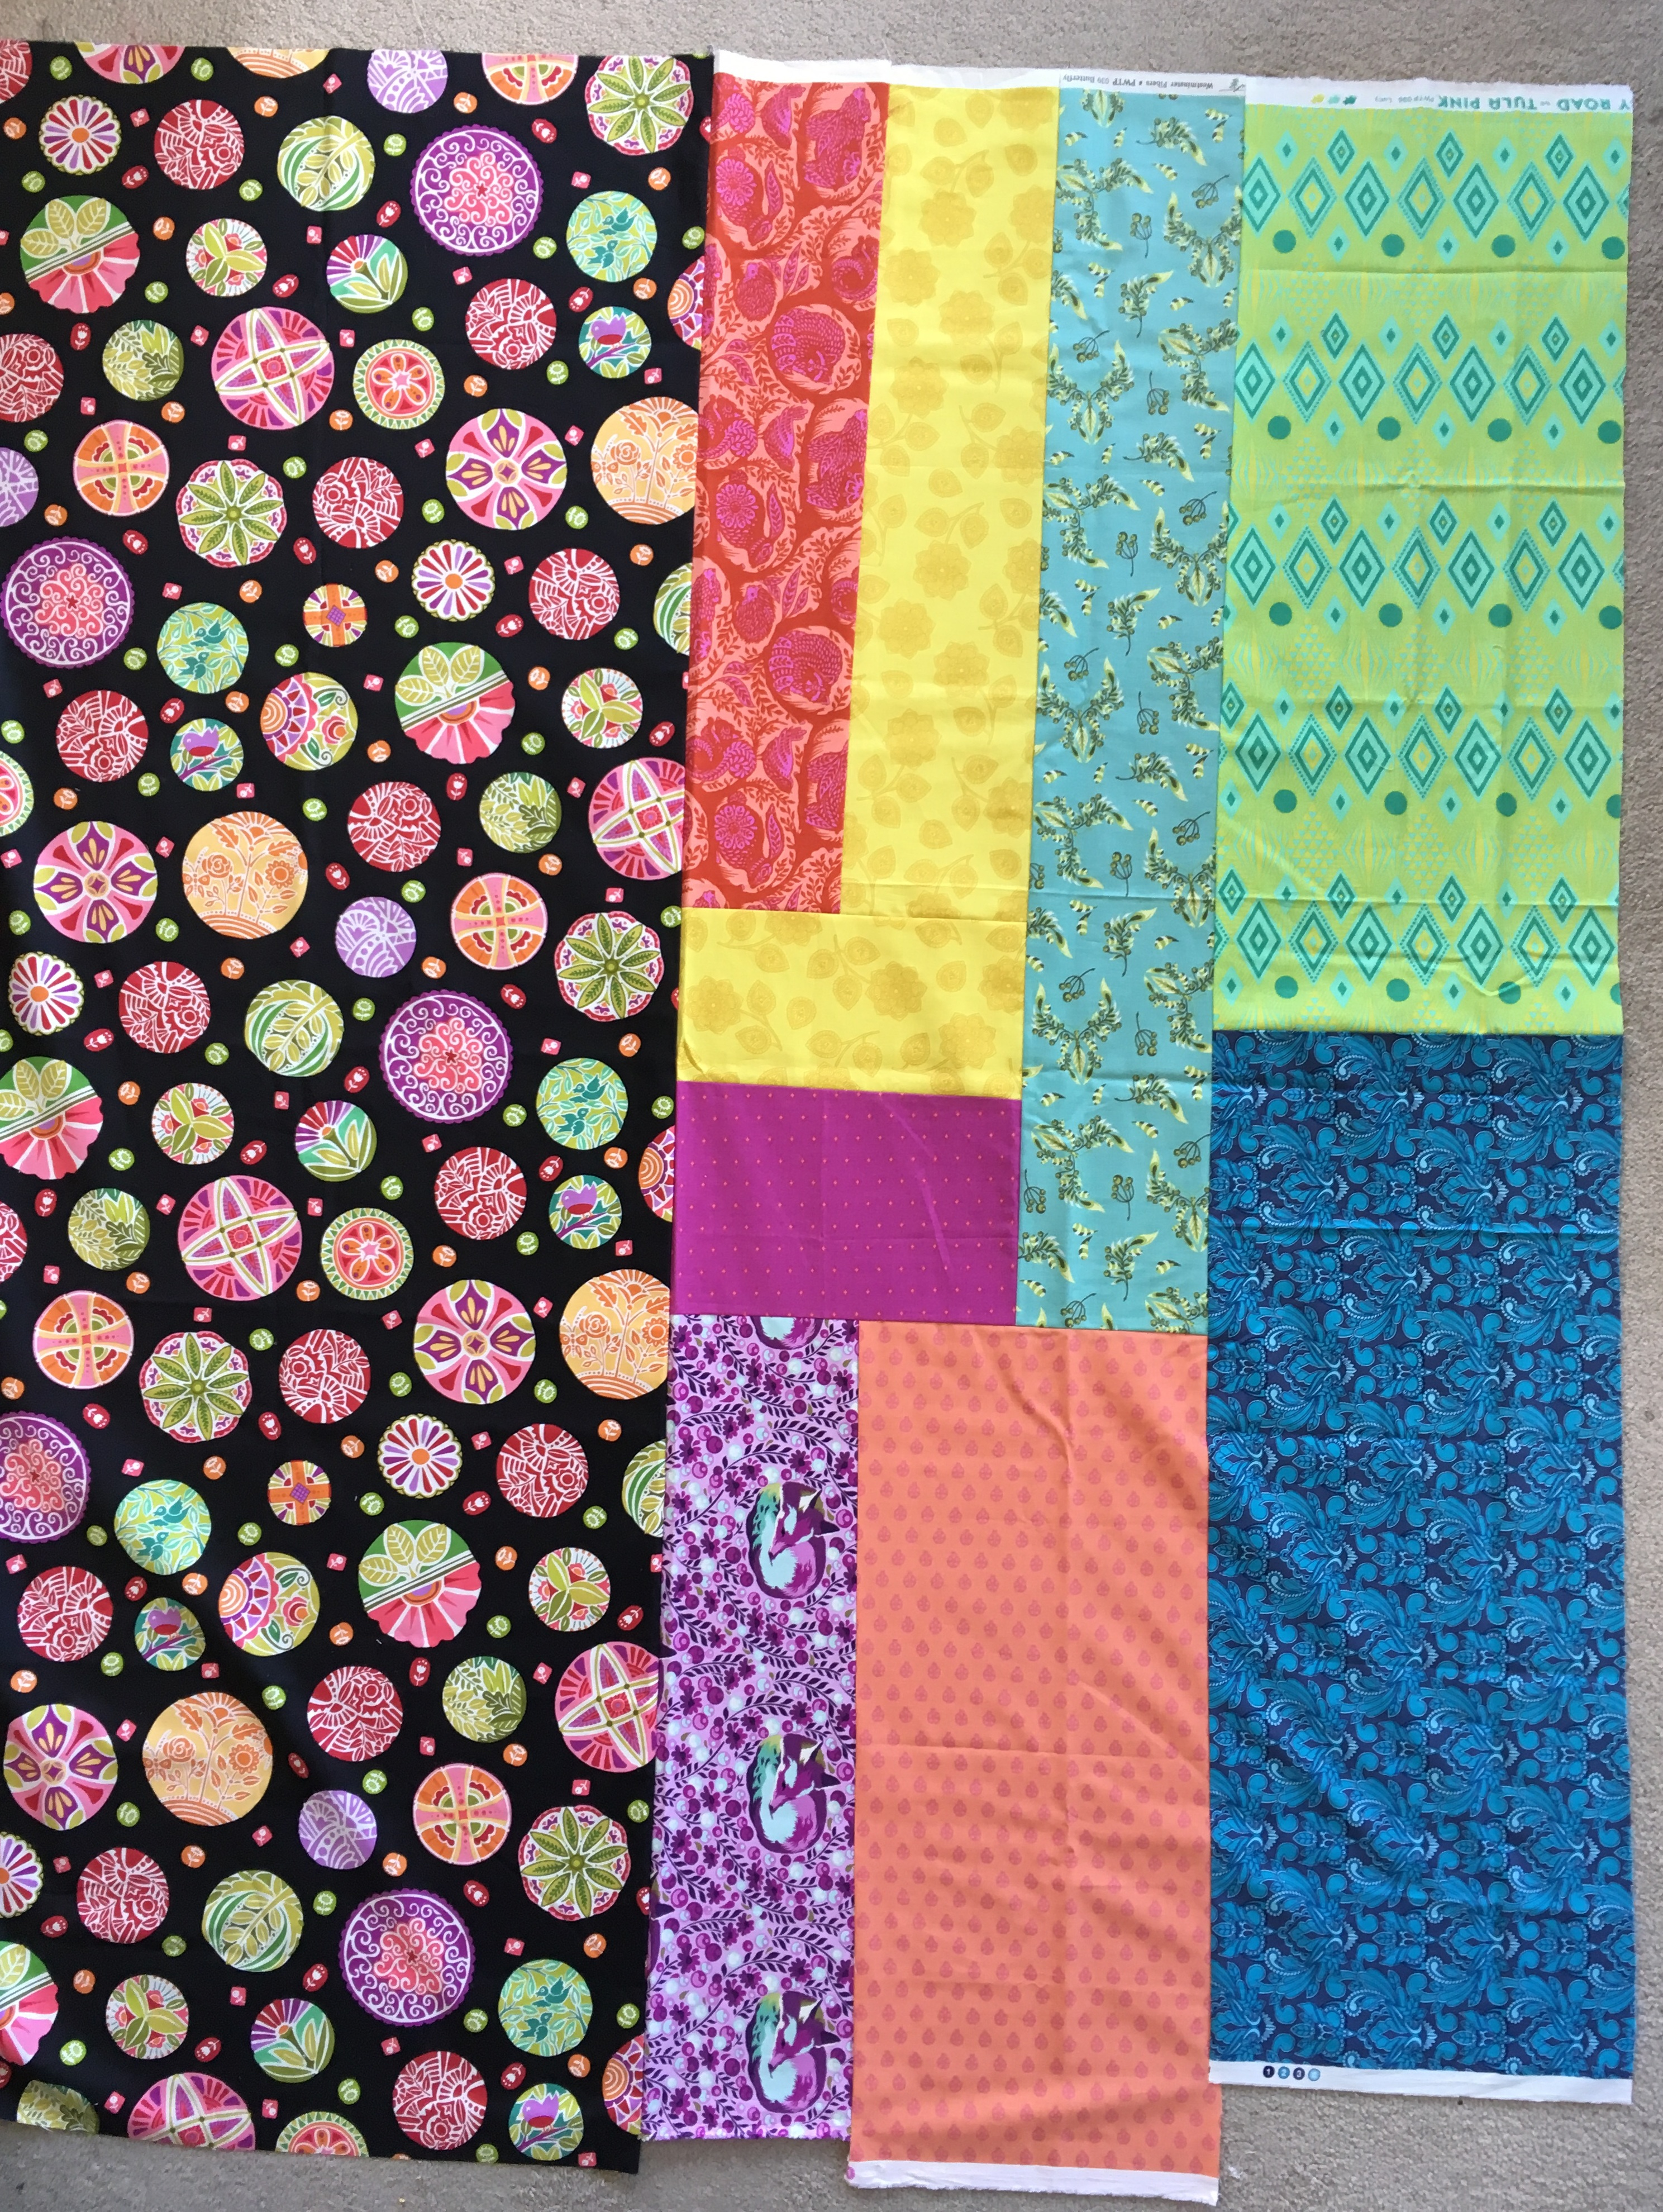 How To Choose Quilt Backing | Blossom Heart Quilts : quilt backing - Adamdwight.com